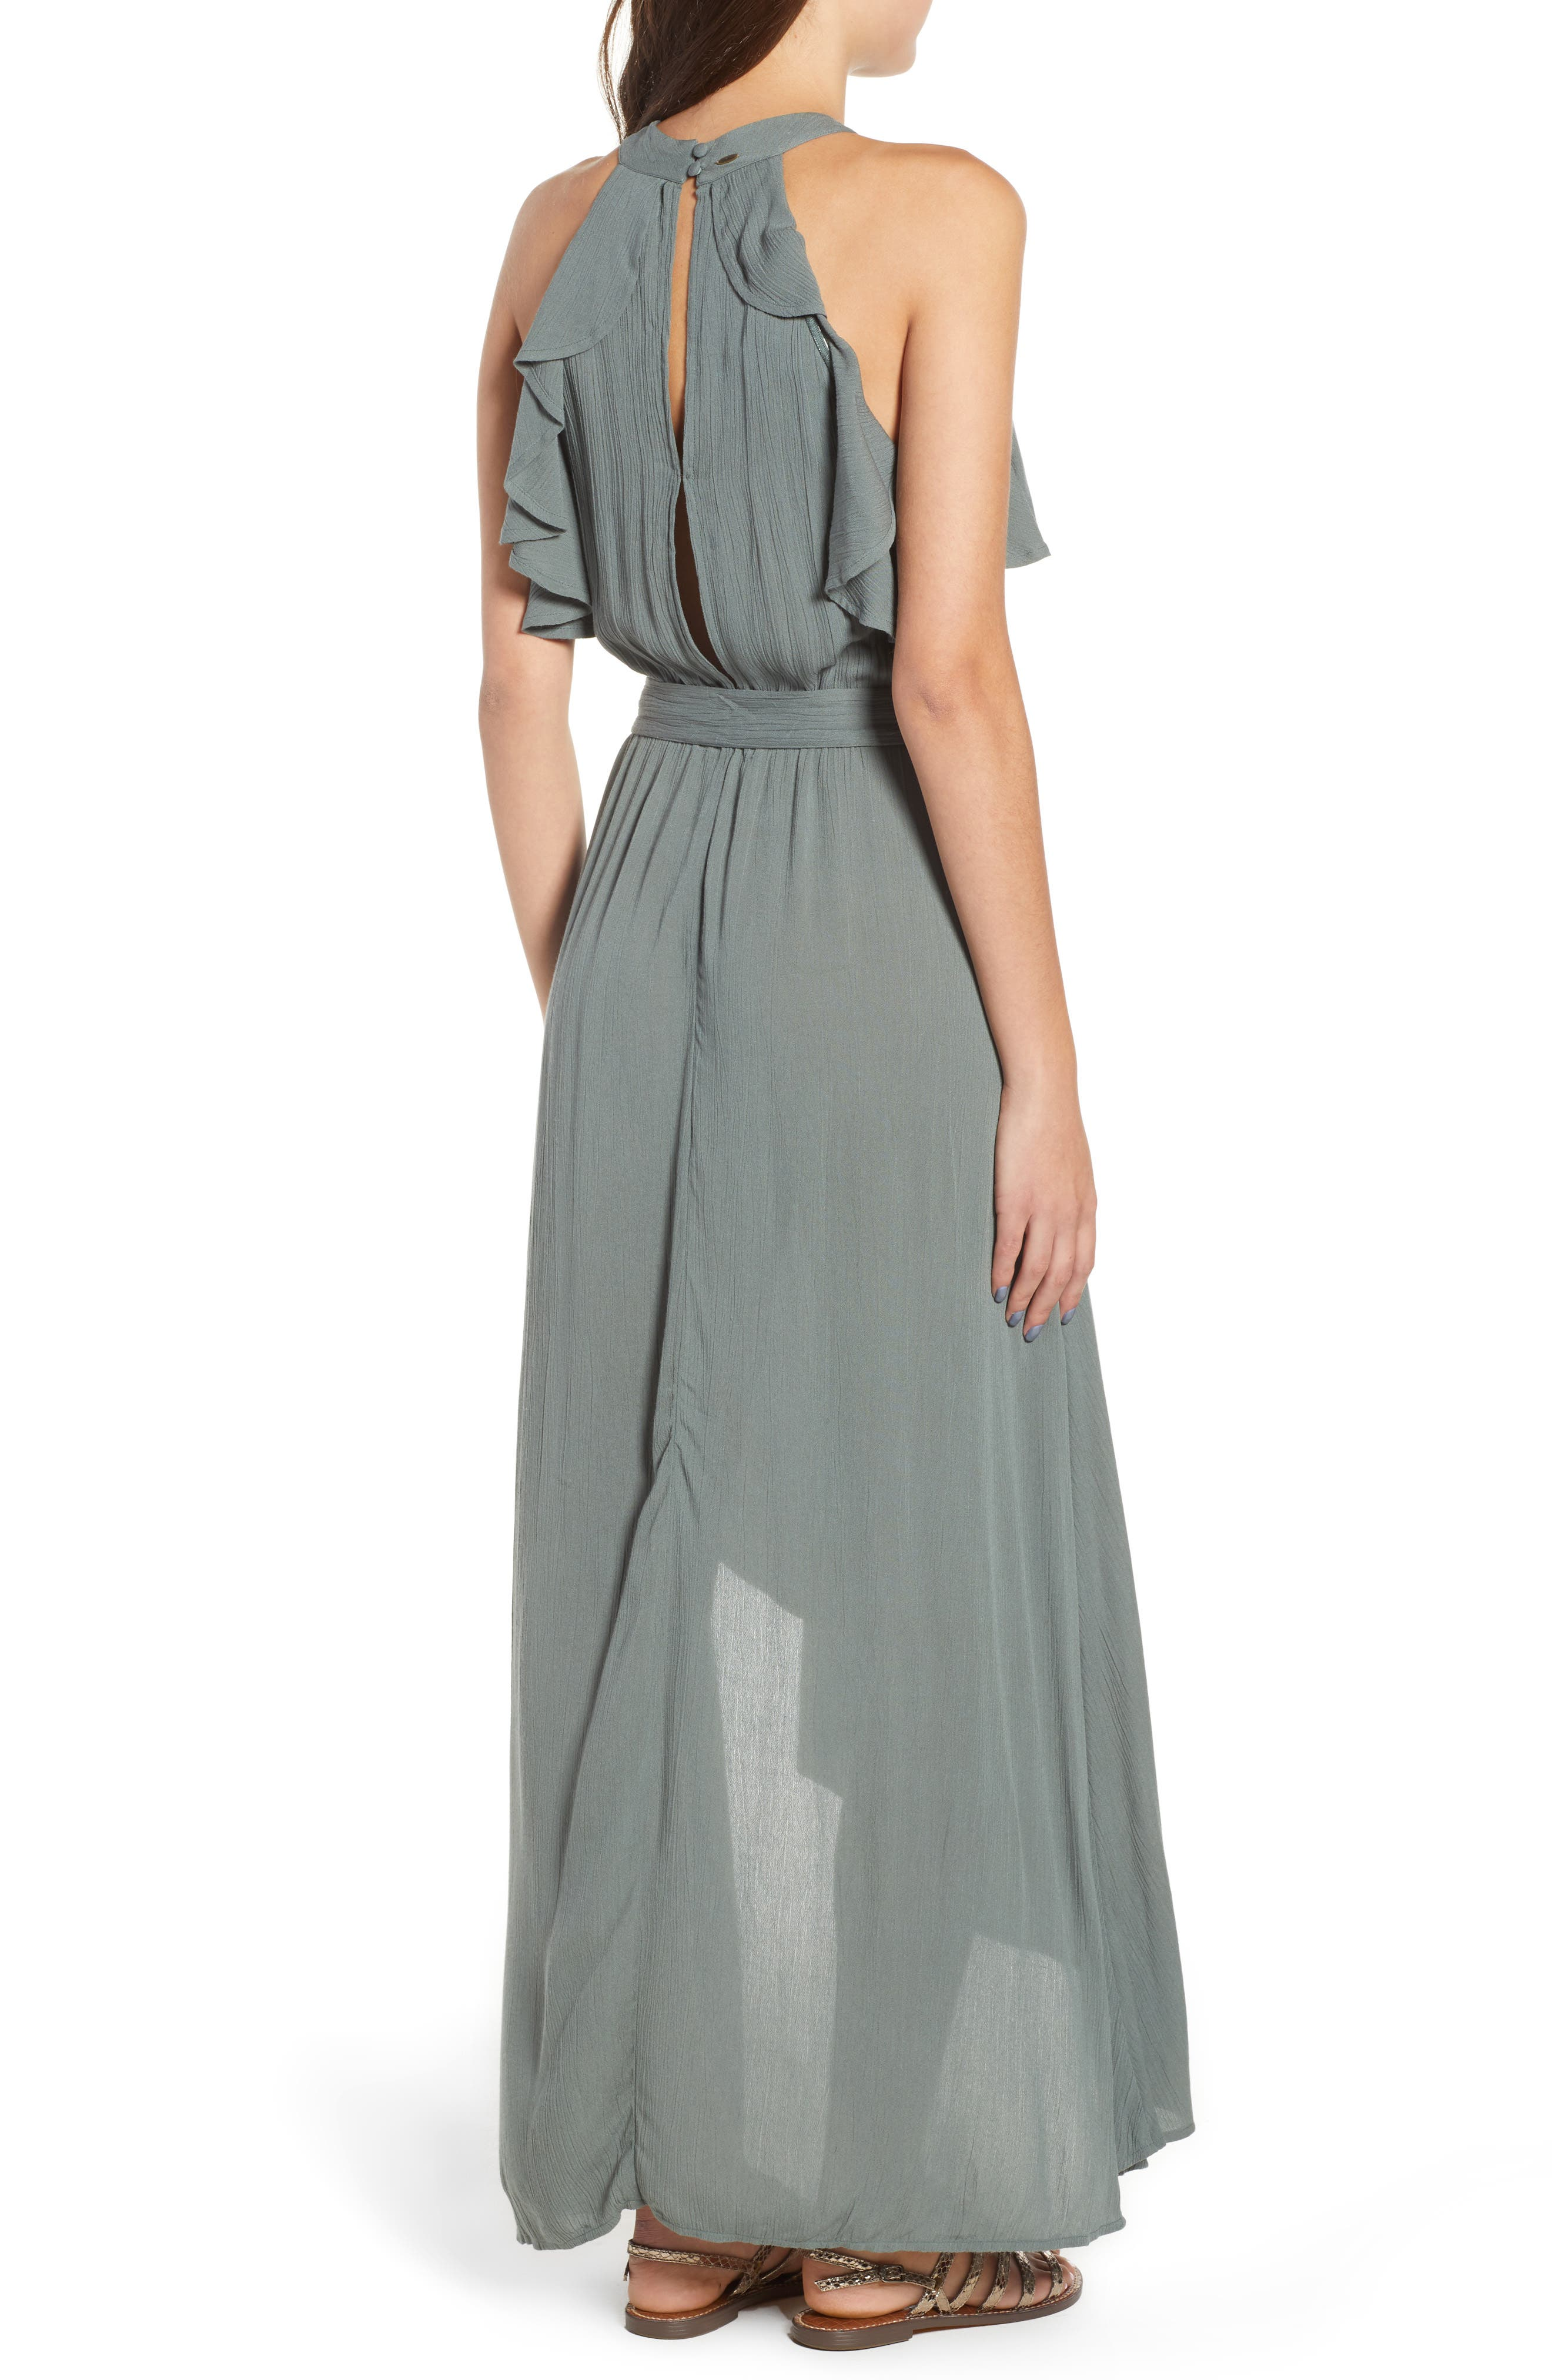 Misty Asymmetrical Dress,                             Alternate thumbnail 2, color,                             300